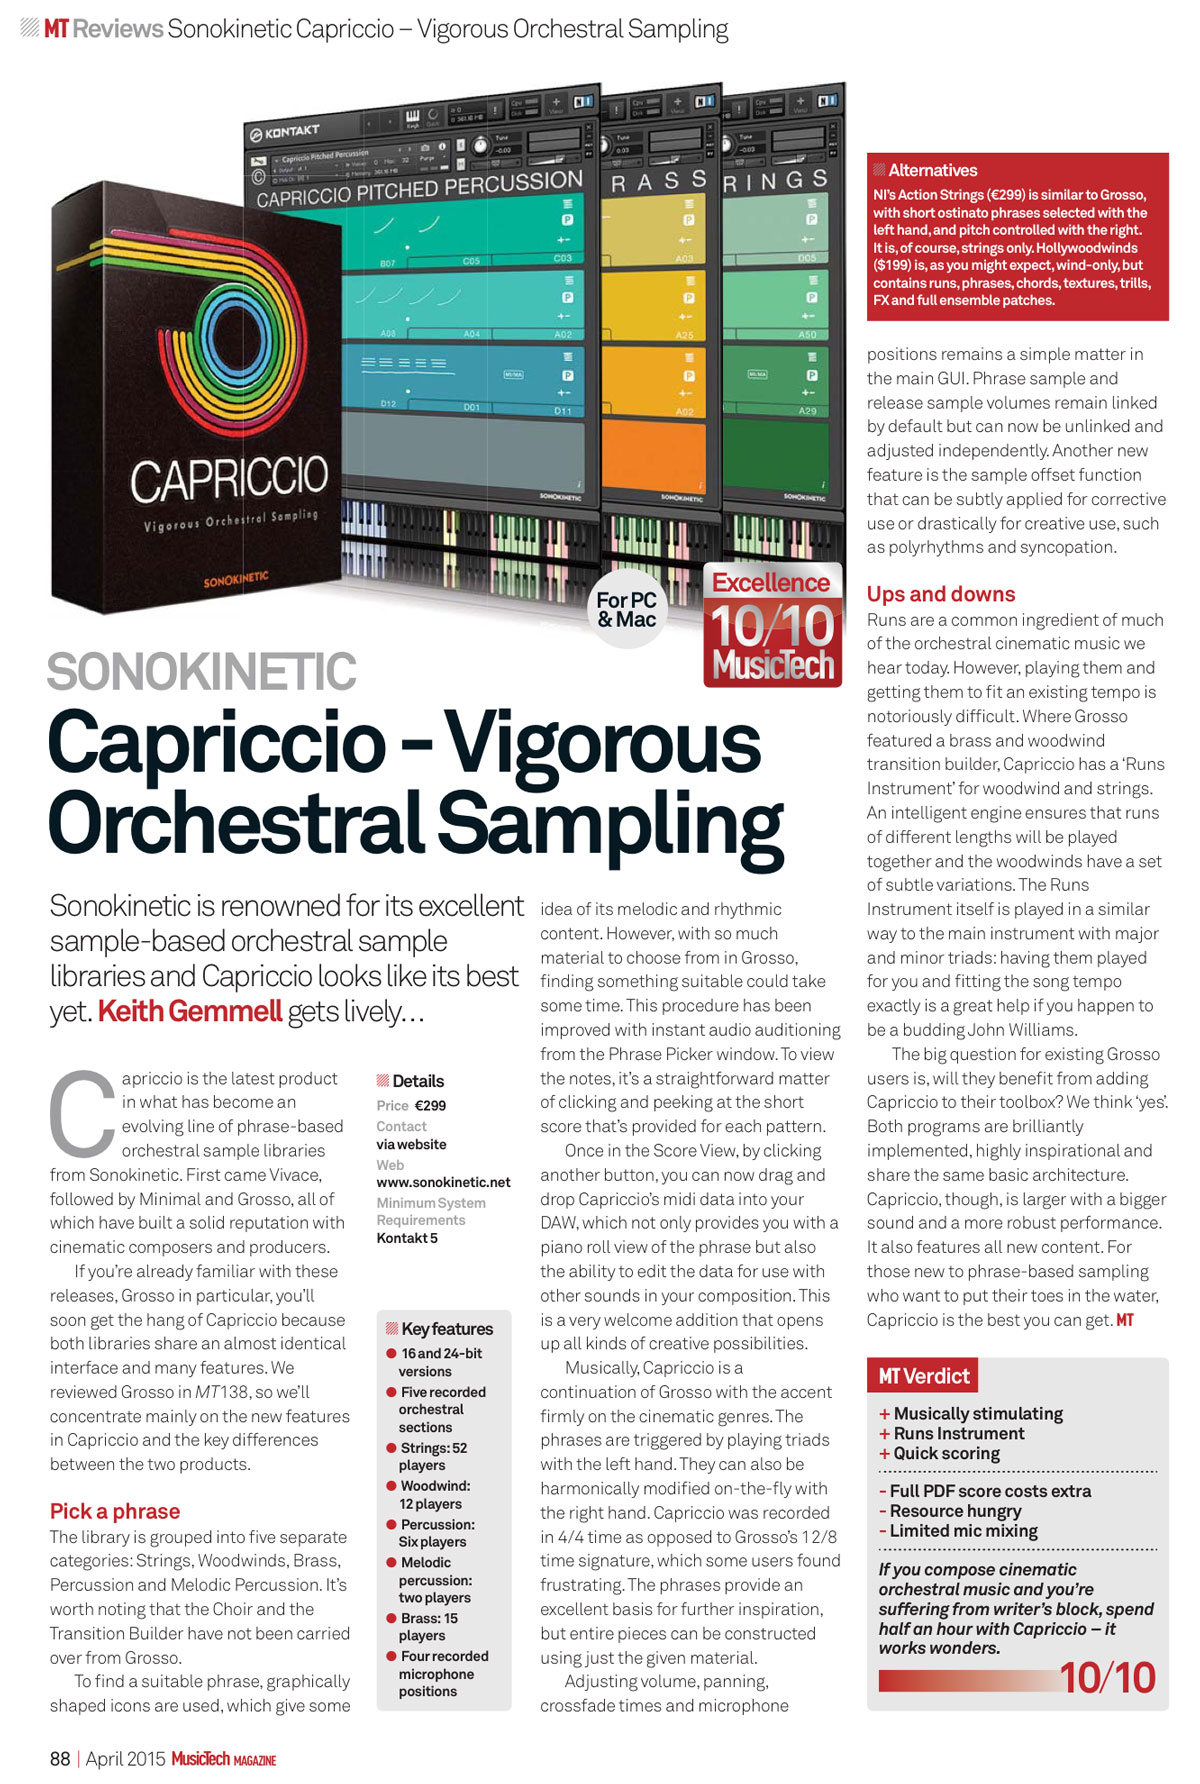 Capriccio Review in MusicTech Magazine